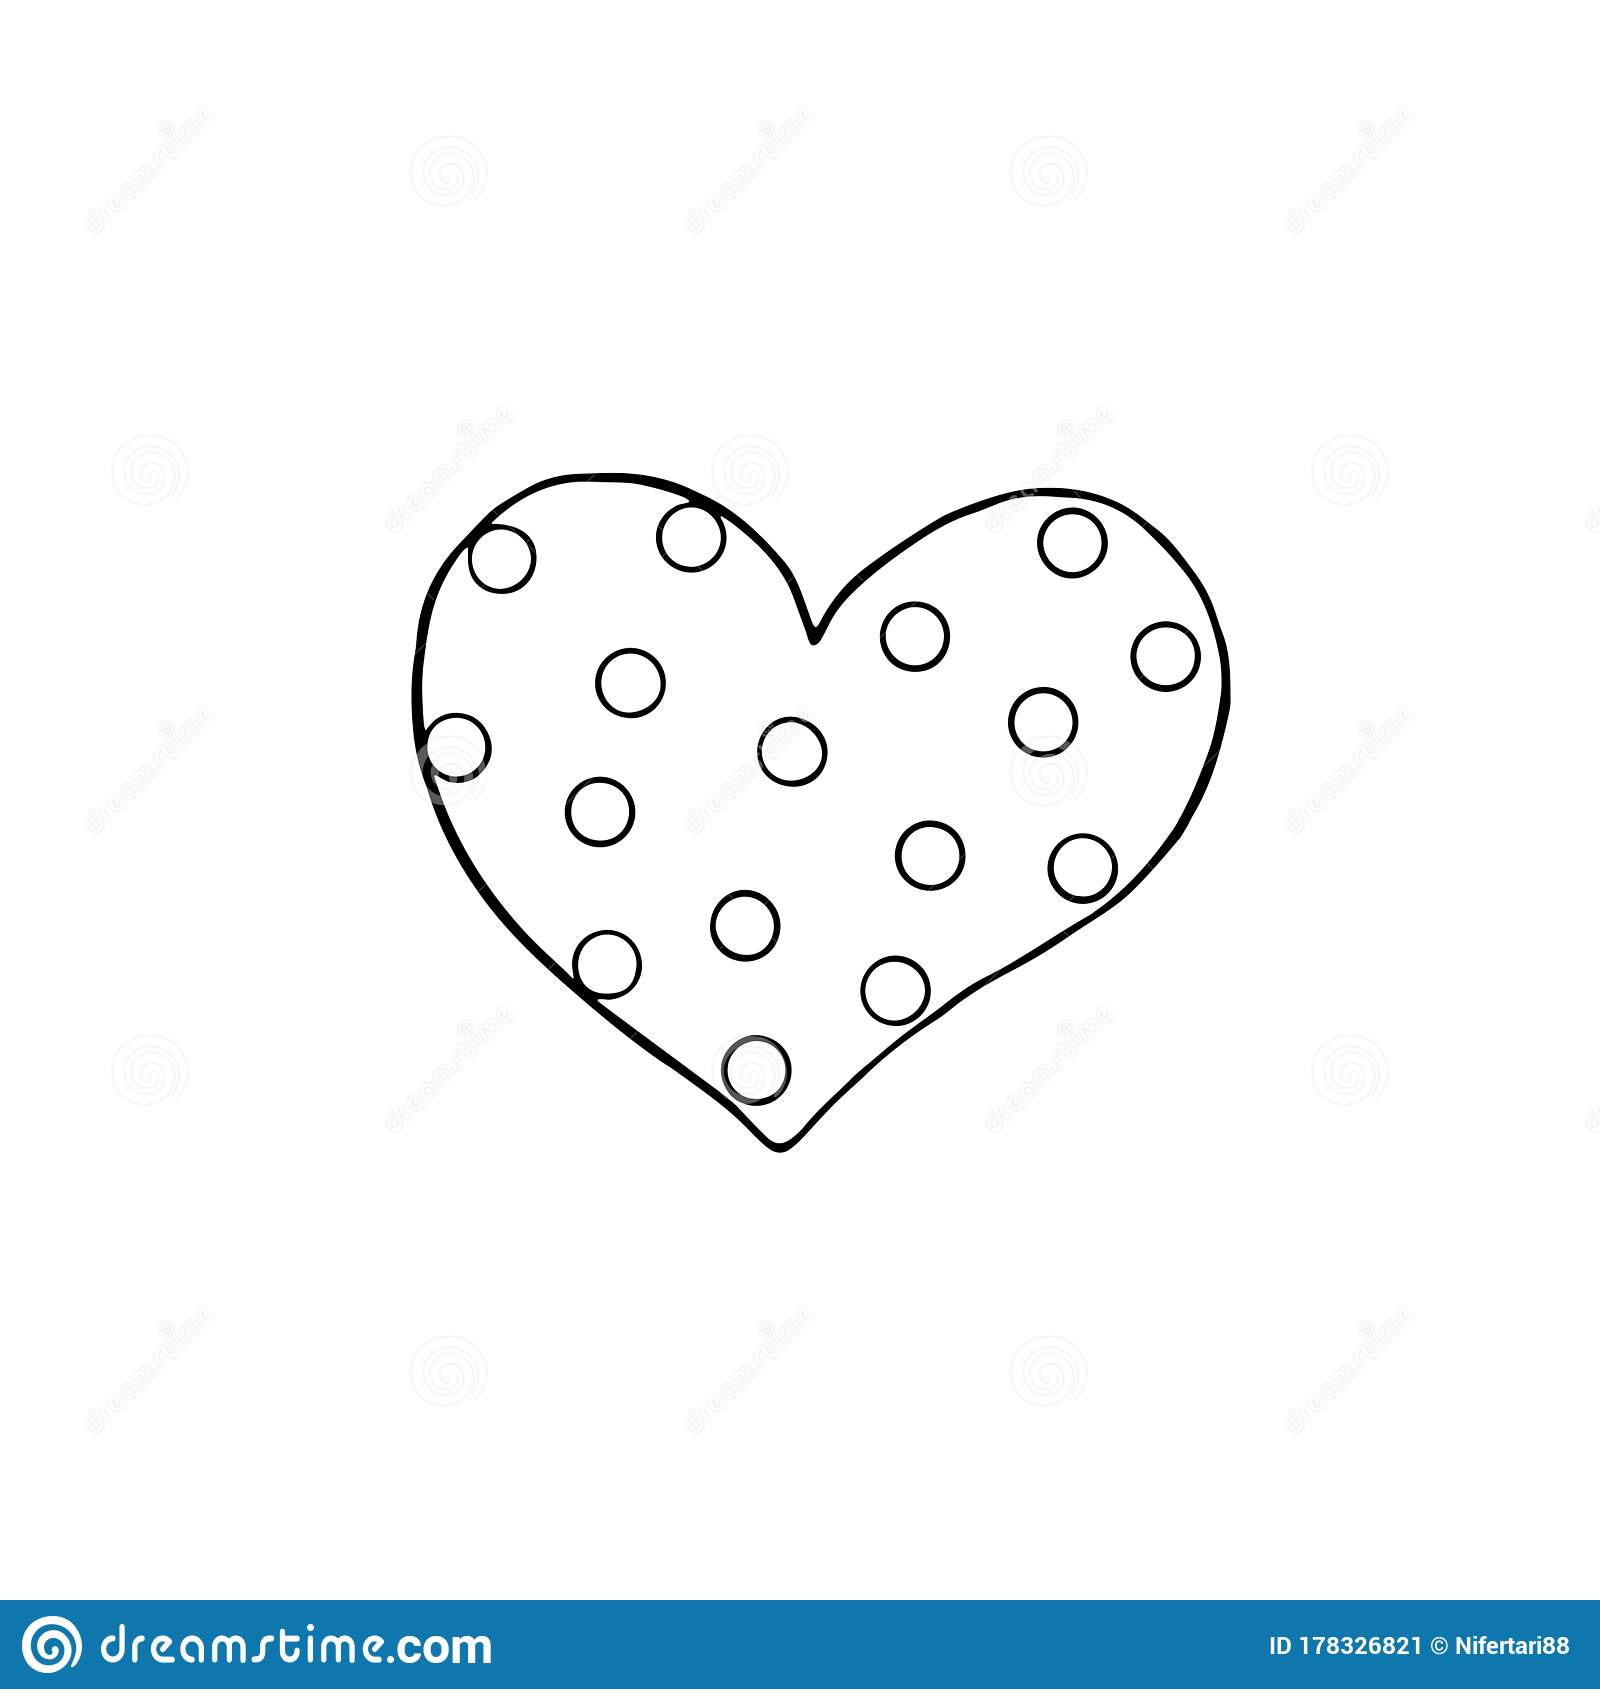 Vector Outline Of A Heart With Polka Dots. Coloring Page ...